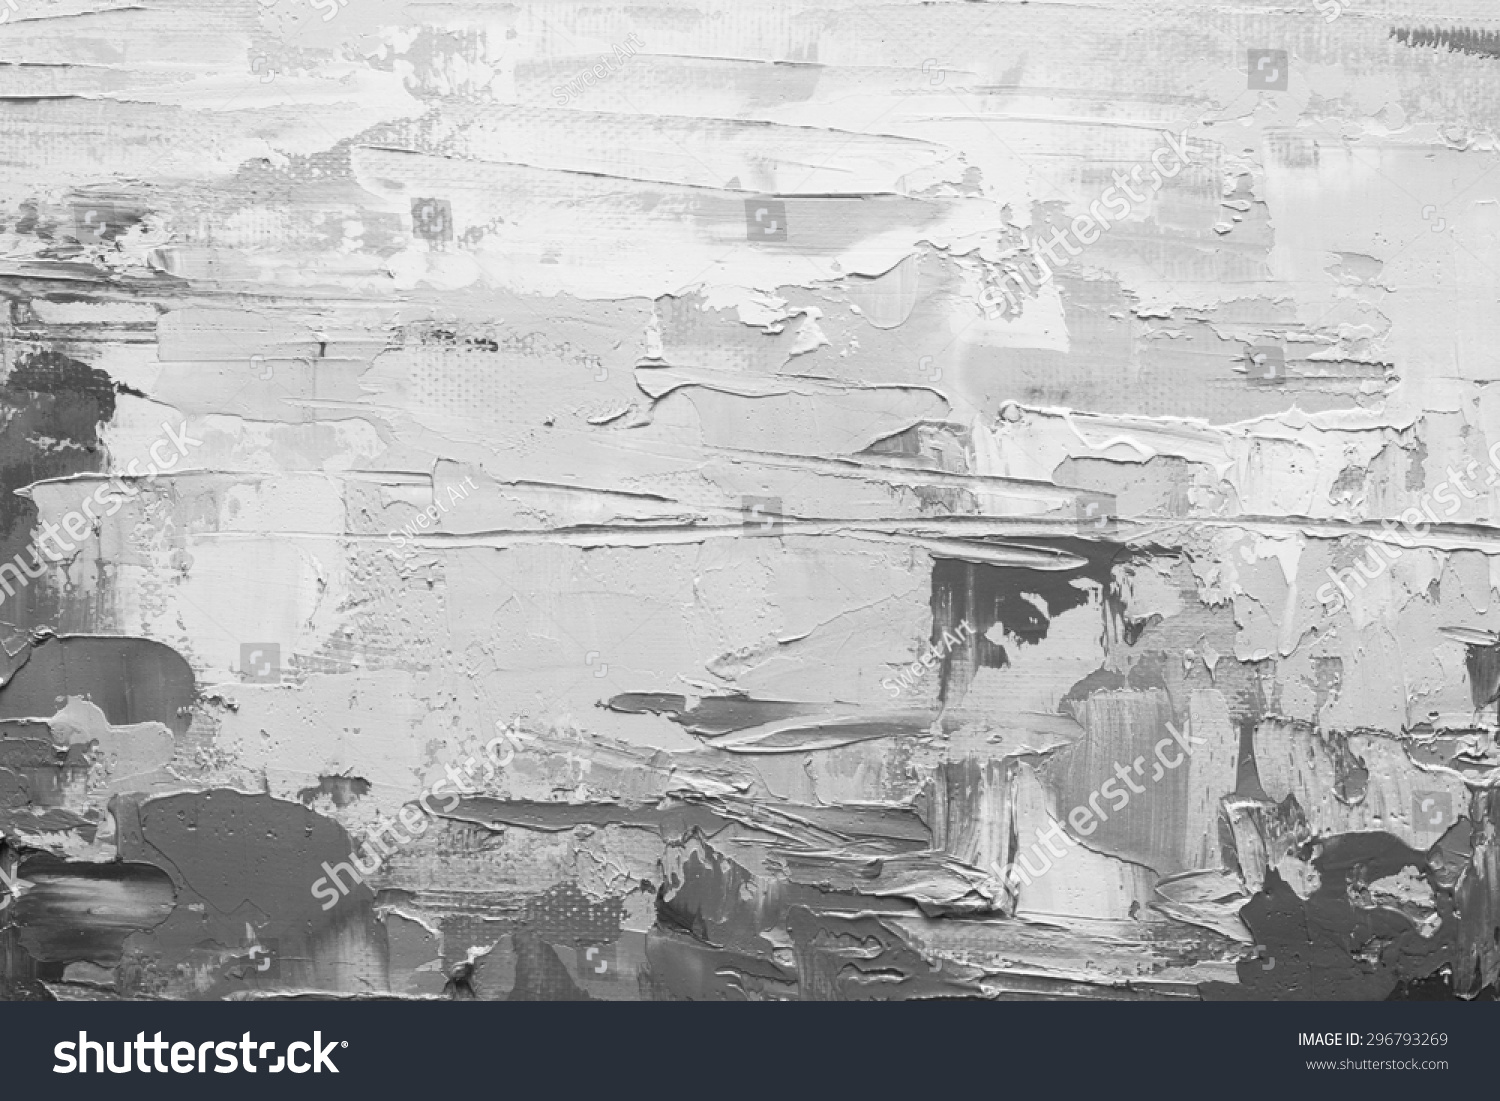 Abstract art grunge background oil painting on canvas black and white texture